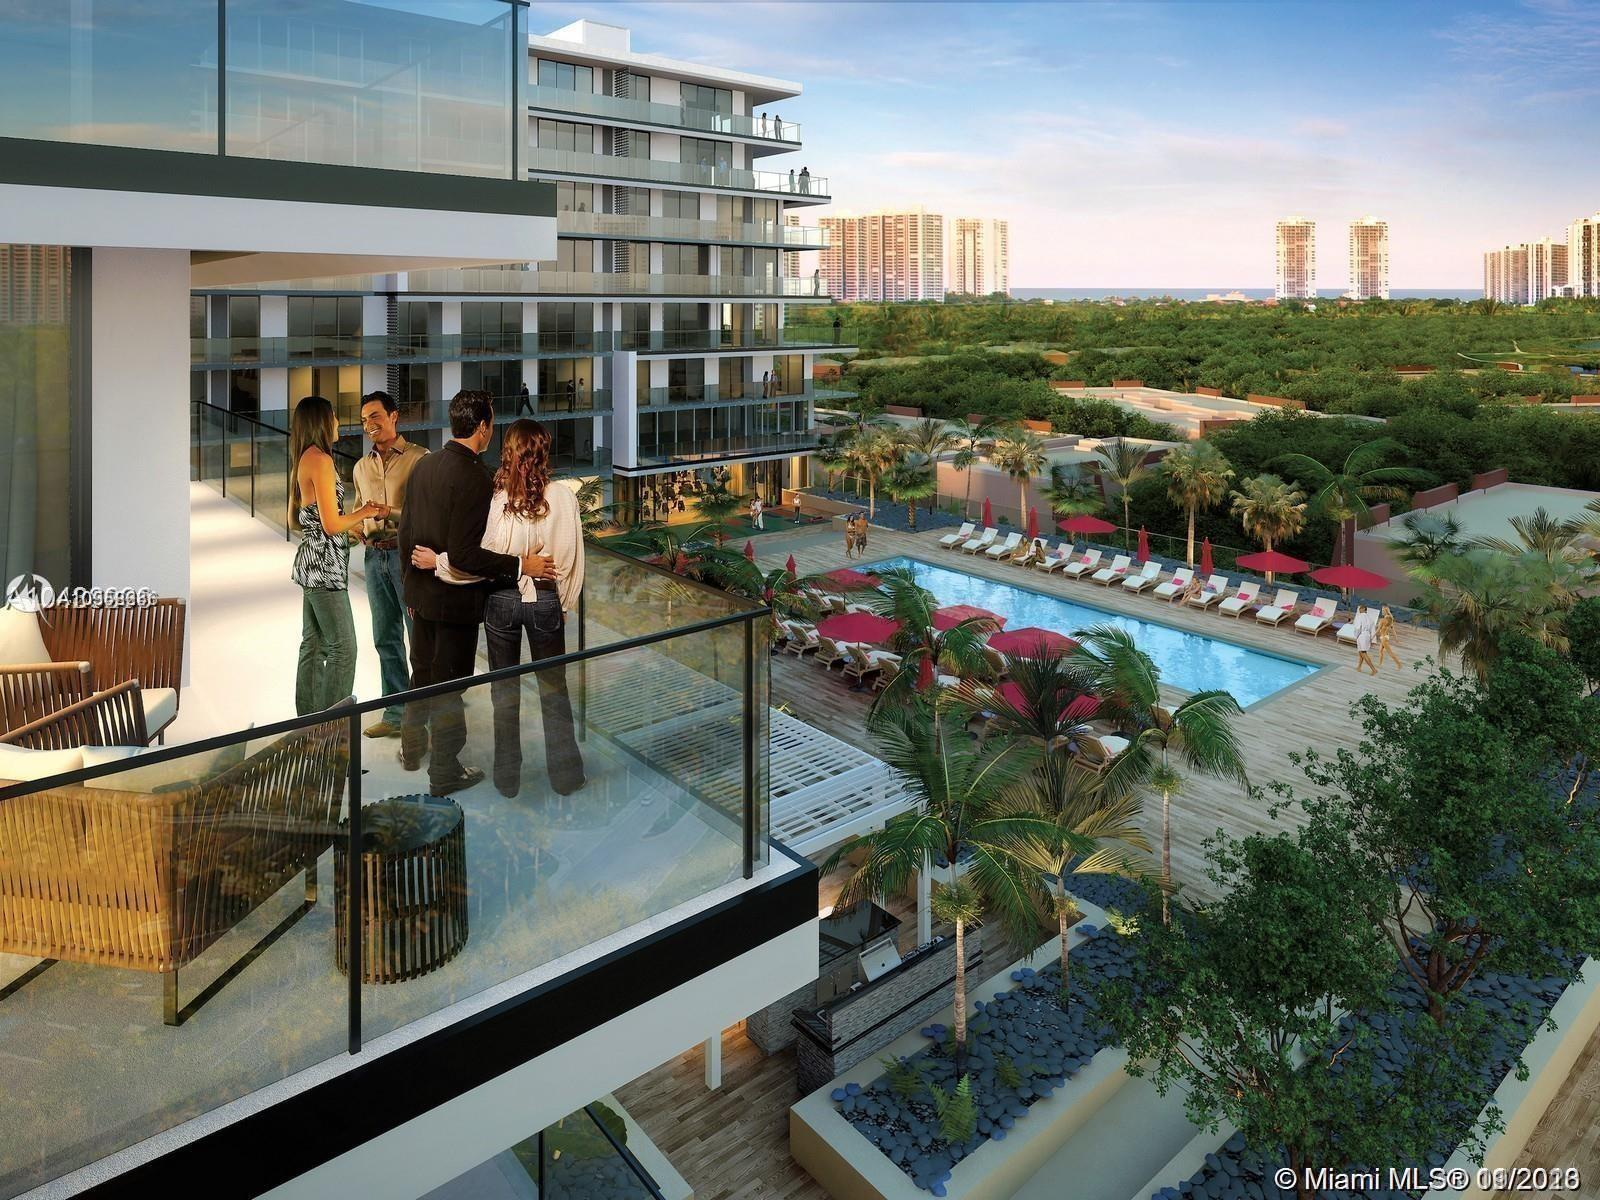 BRAND NEW NEVER LIVED IN RESIDENCE IN THE NEW CENTER OF LIVING IN AVENTURA - AVENTURA PARKSQUARE. Th